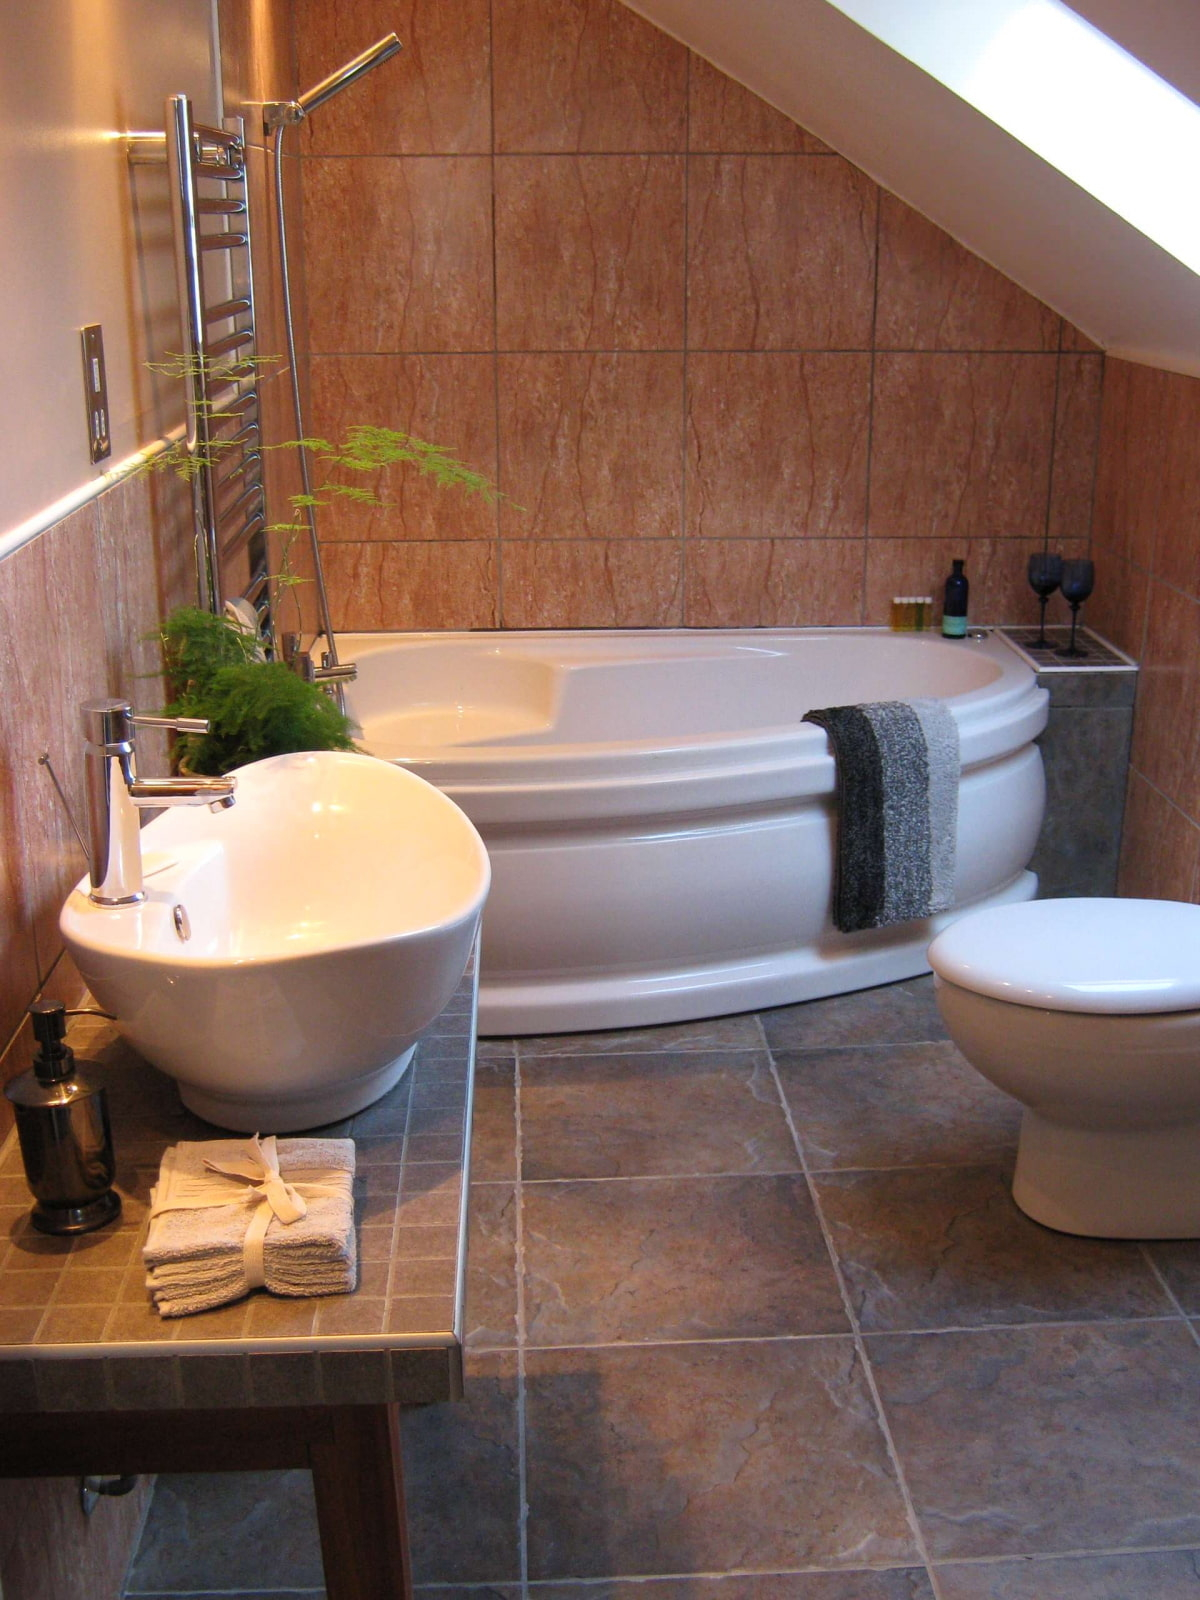 Corner Bath Tubs Are Big in Small Spaces  sc 1 st  Visual Hunt & Corner Tubs For Small Bathrooms - Visual Hunt